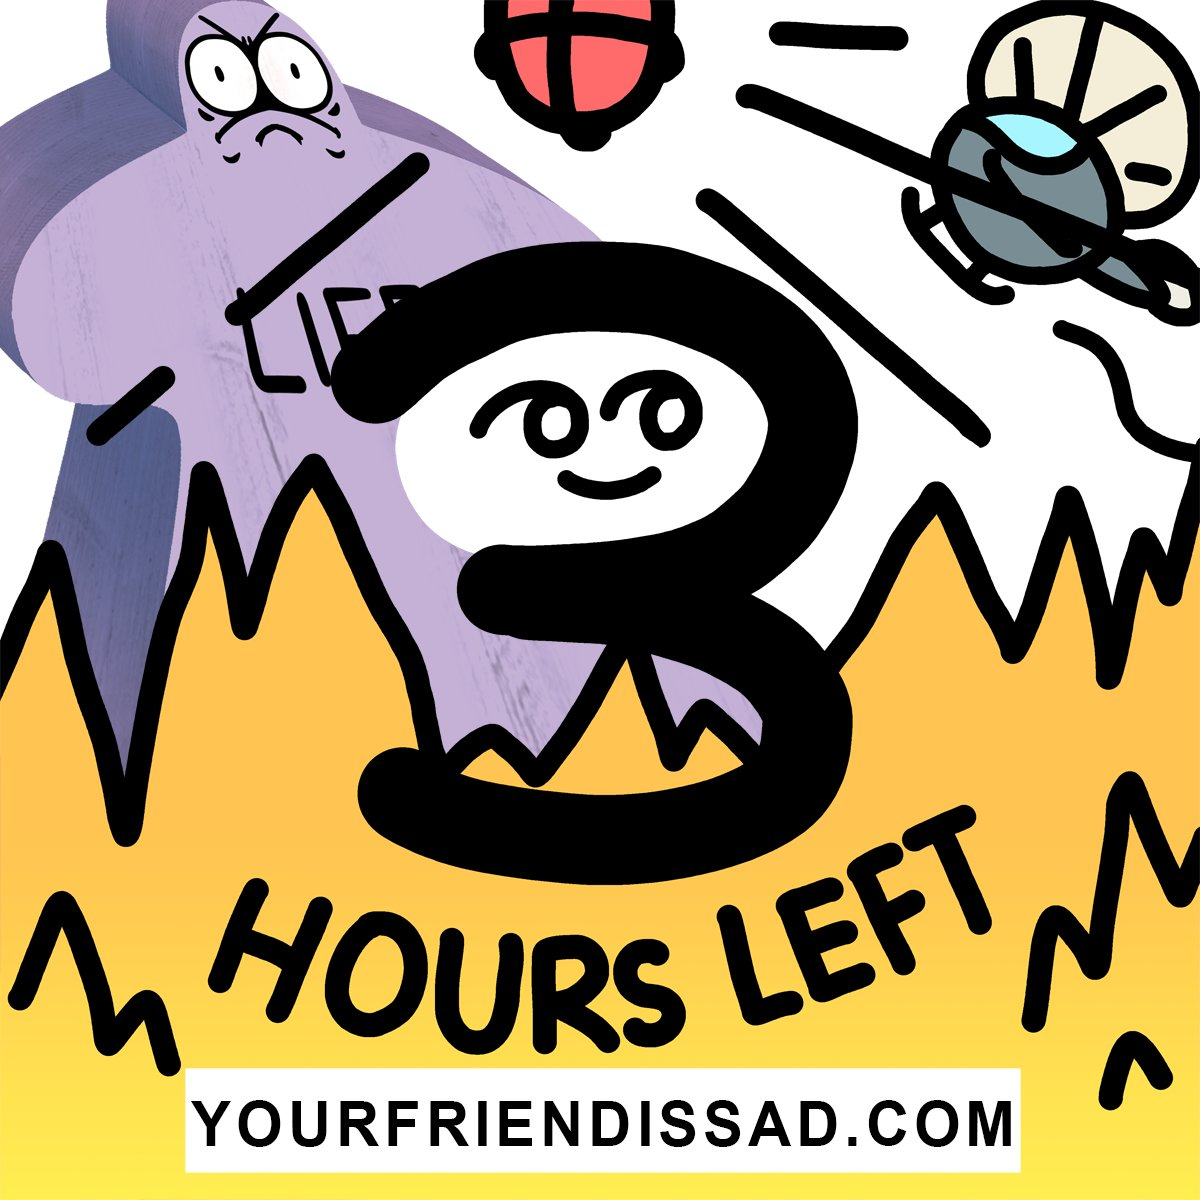 3 HOURS REMAIN. THAT'S BARELY ANY HOURS kickstarter.com/projects/drink…